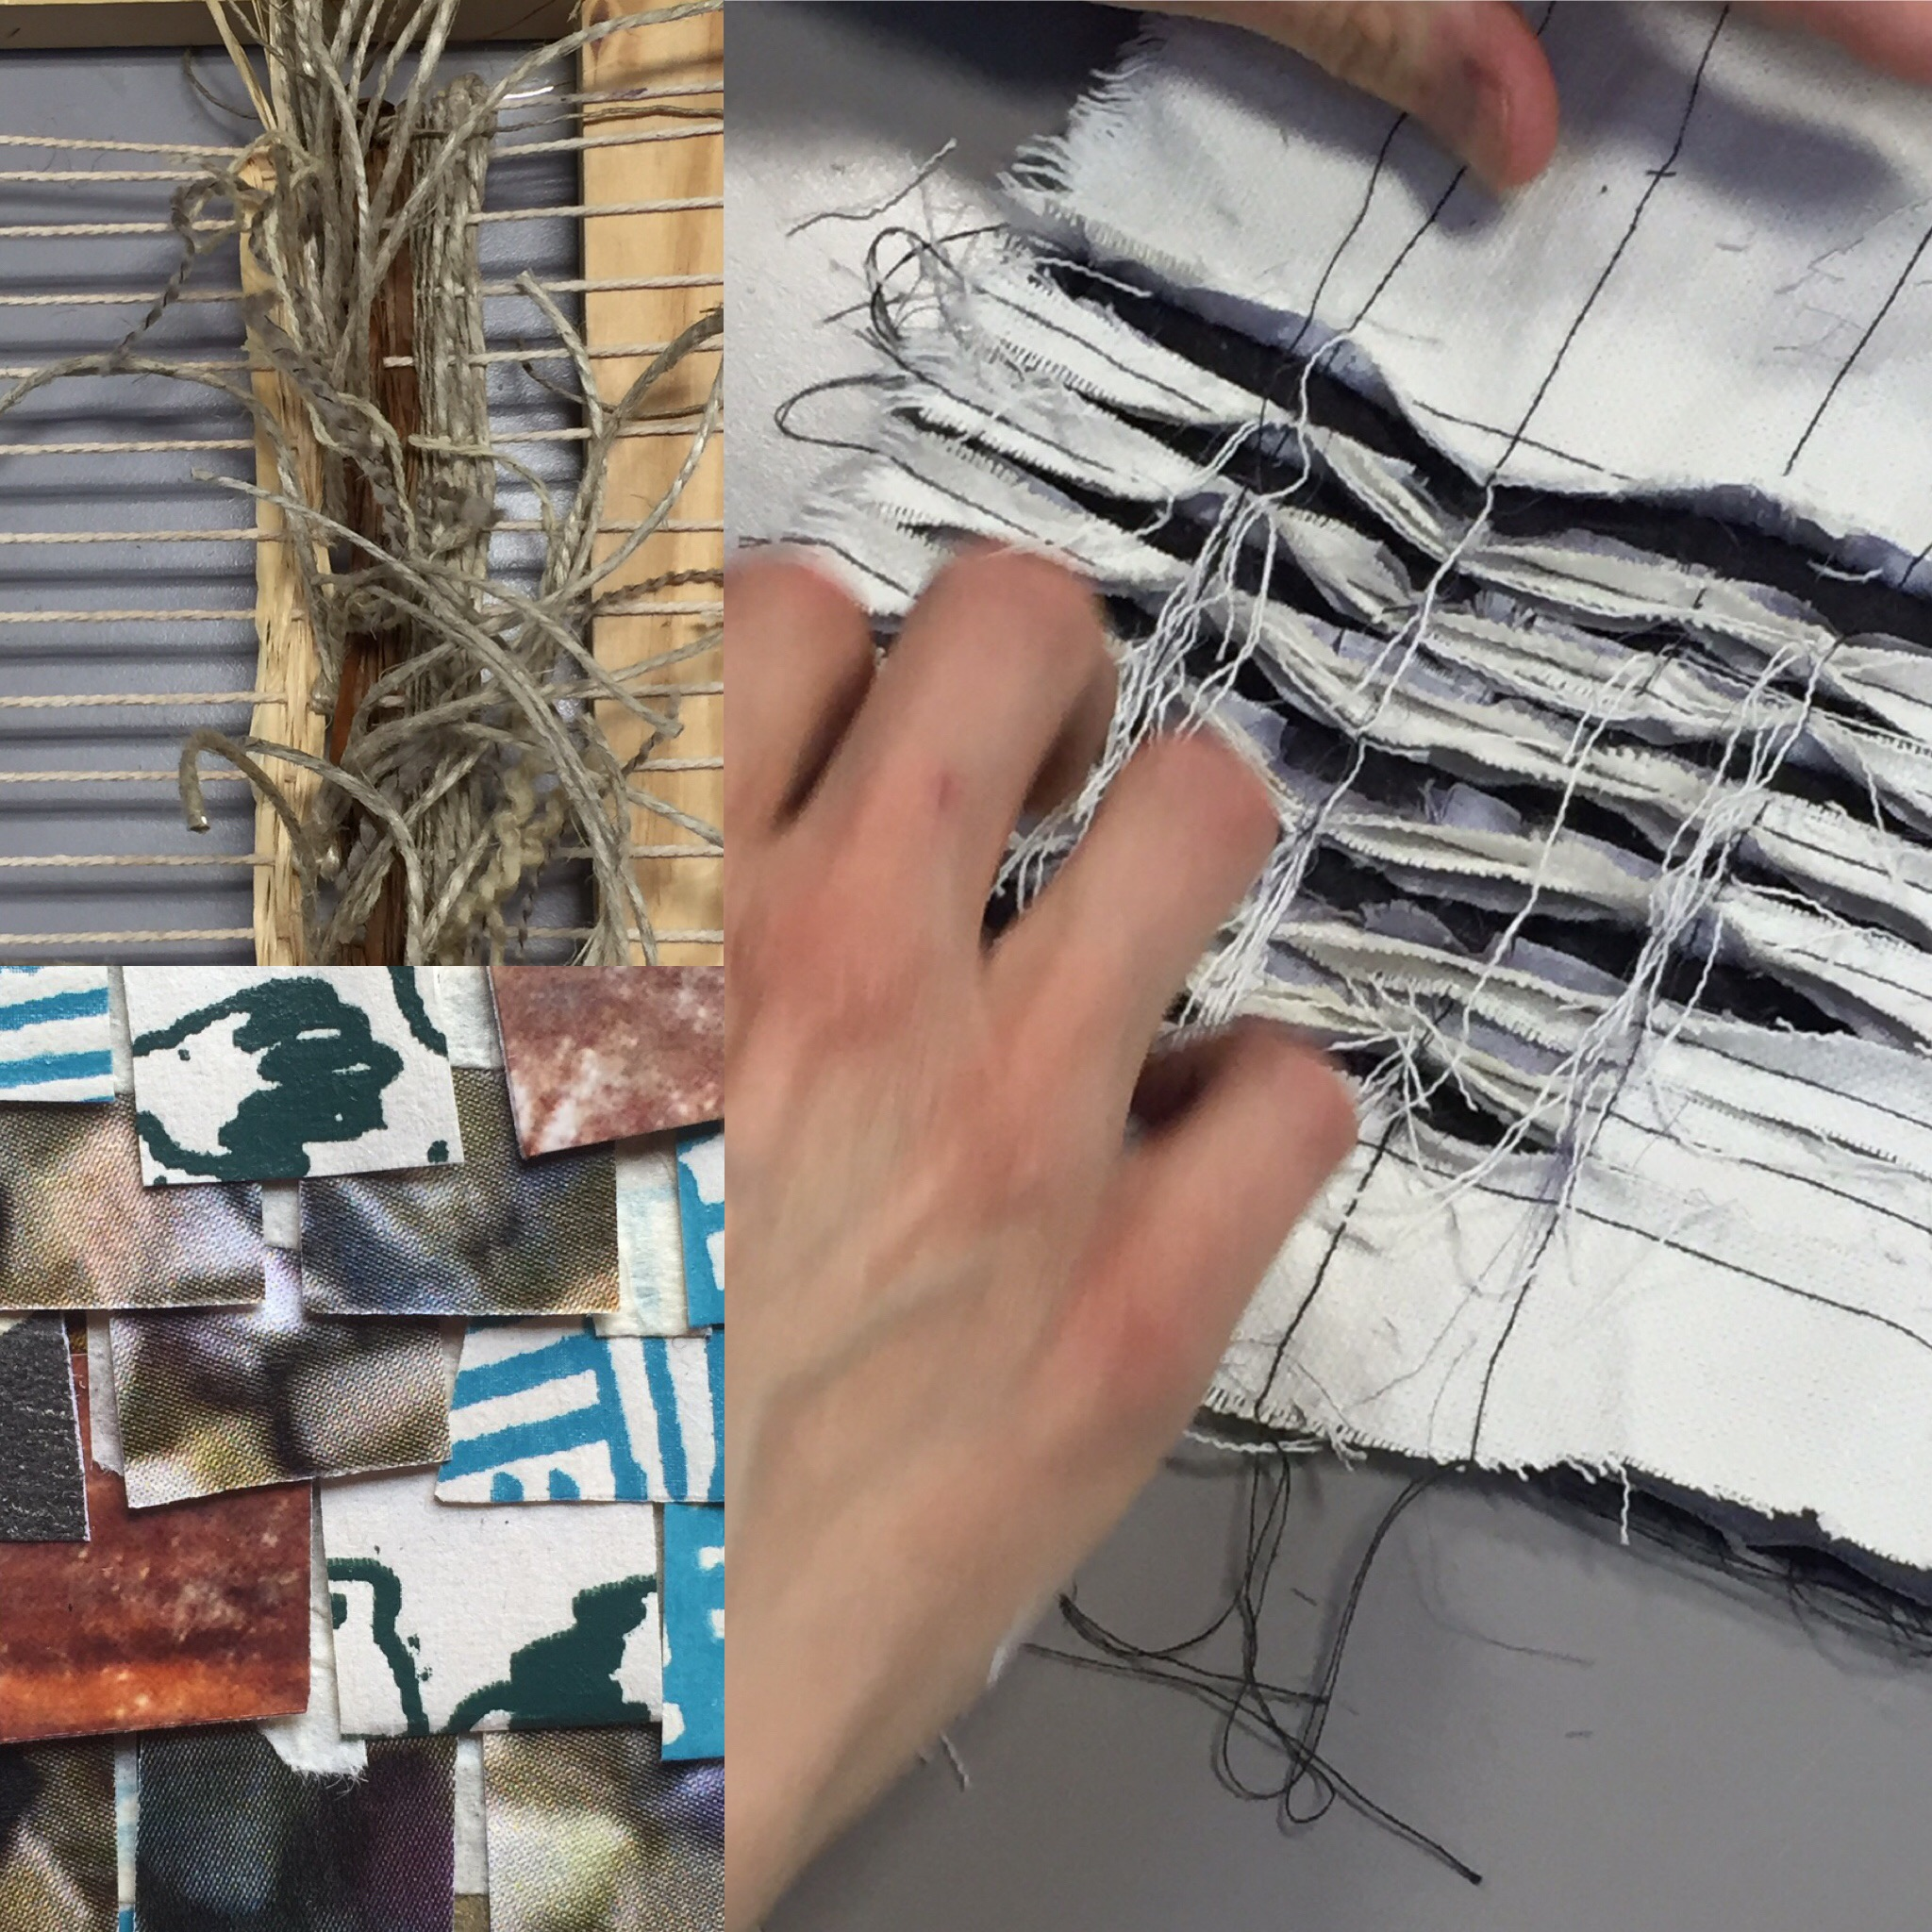 This fun experimental day course includes sketchbook development tips, table weaving, chenilling, mono-printing and much more as we use a mindful walk and sketching to develop a narrative for sensory sketch-booking.